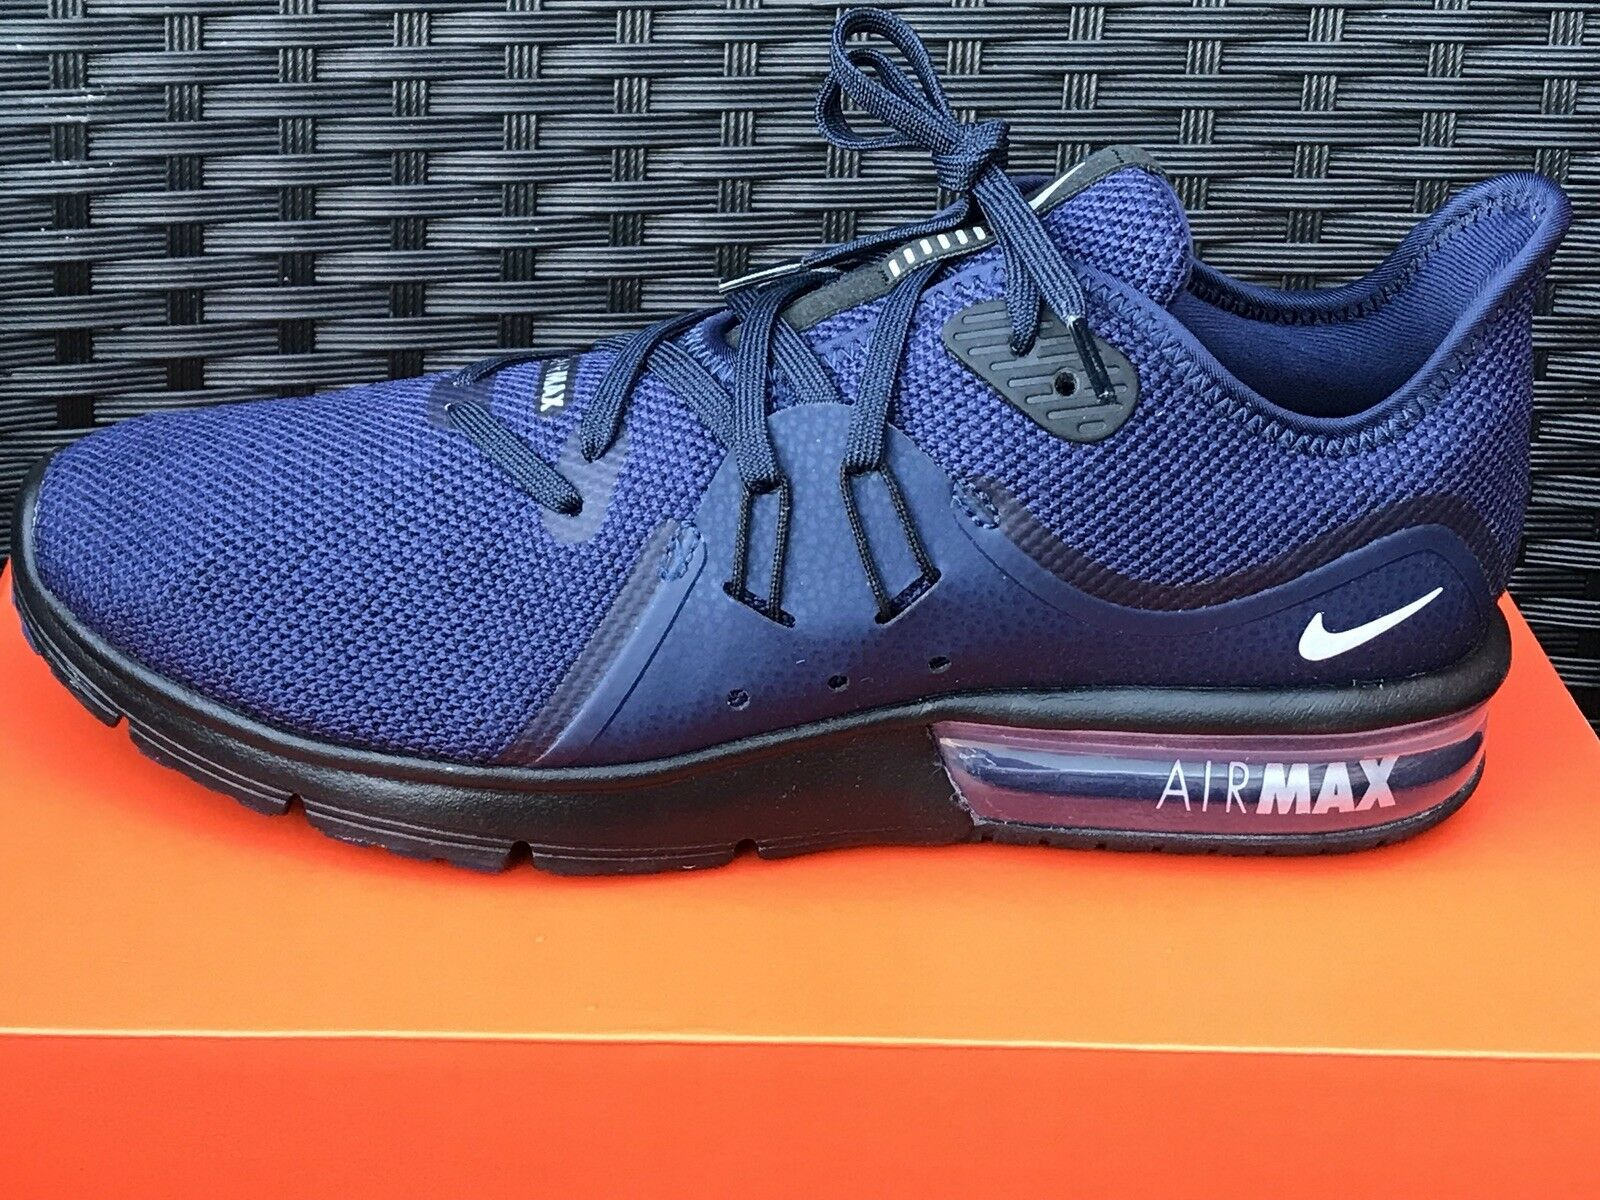 Nike Air Max Sequent 3   Uomo Eur Schuhes Trainers Uk 8.5 Eur Uomo 43 5ea419